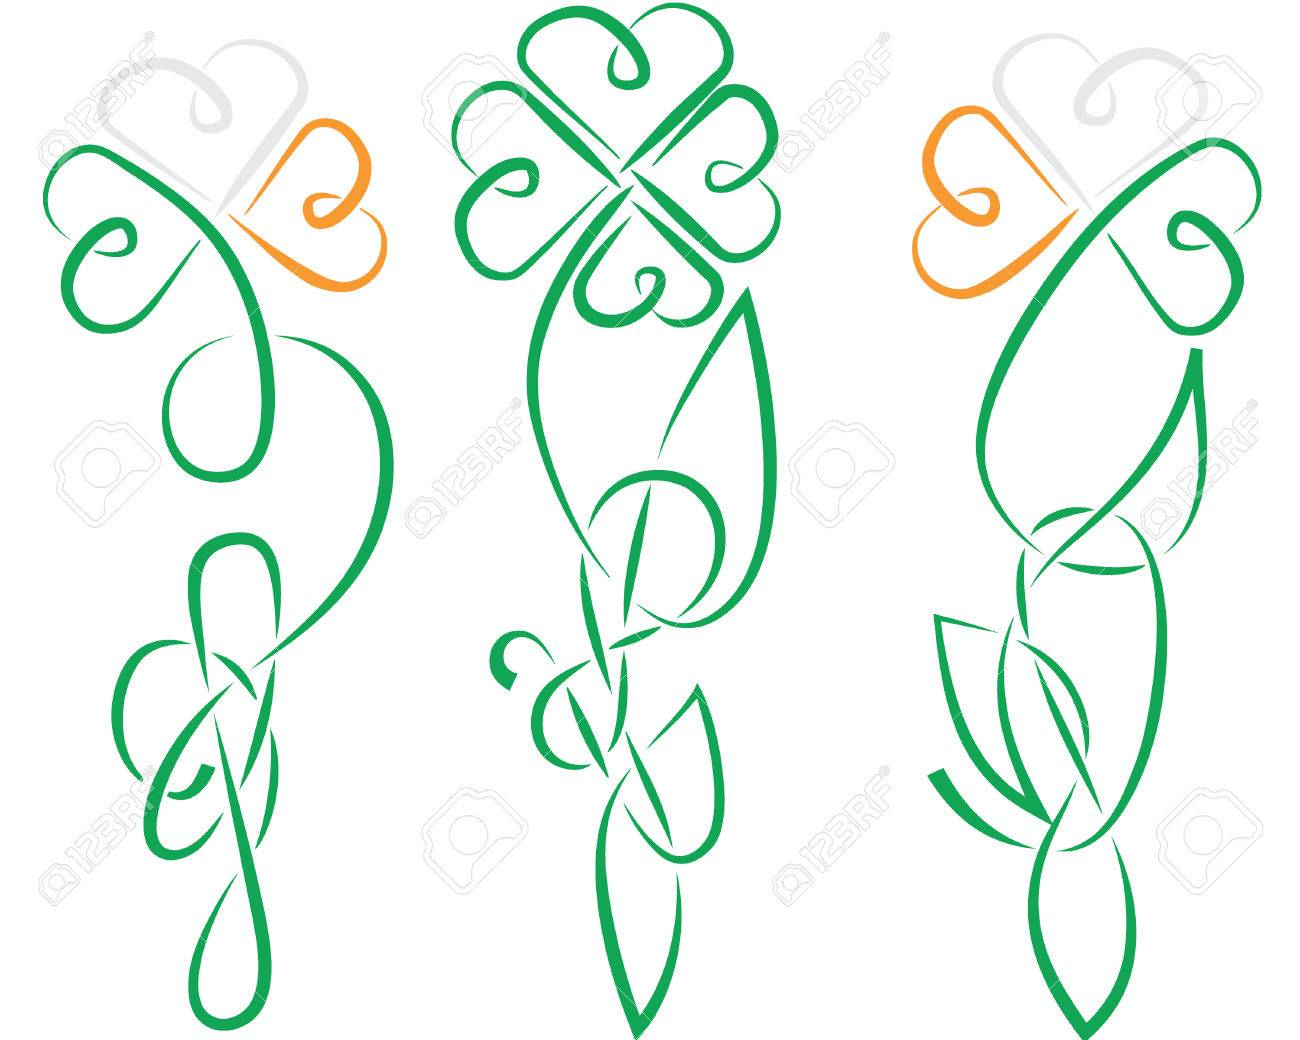 the shamrock have been made in ancient ireland or celtic knot